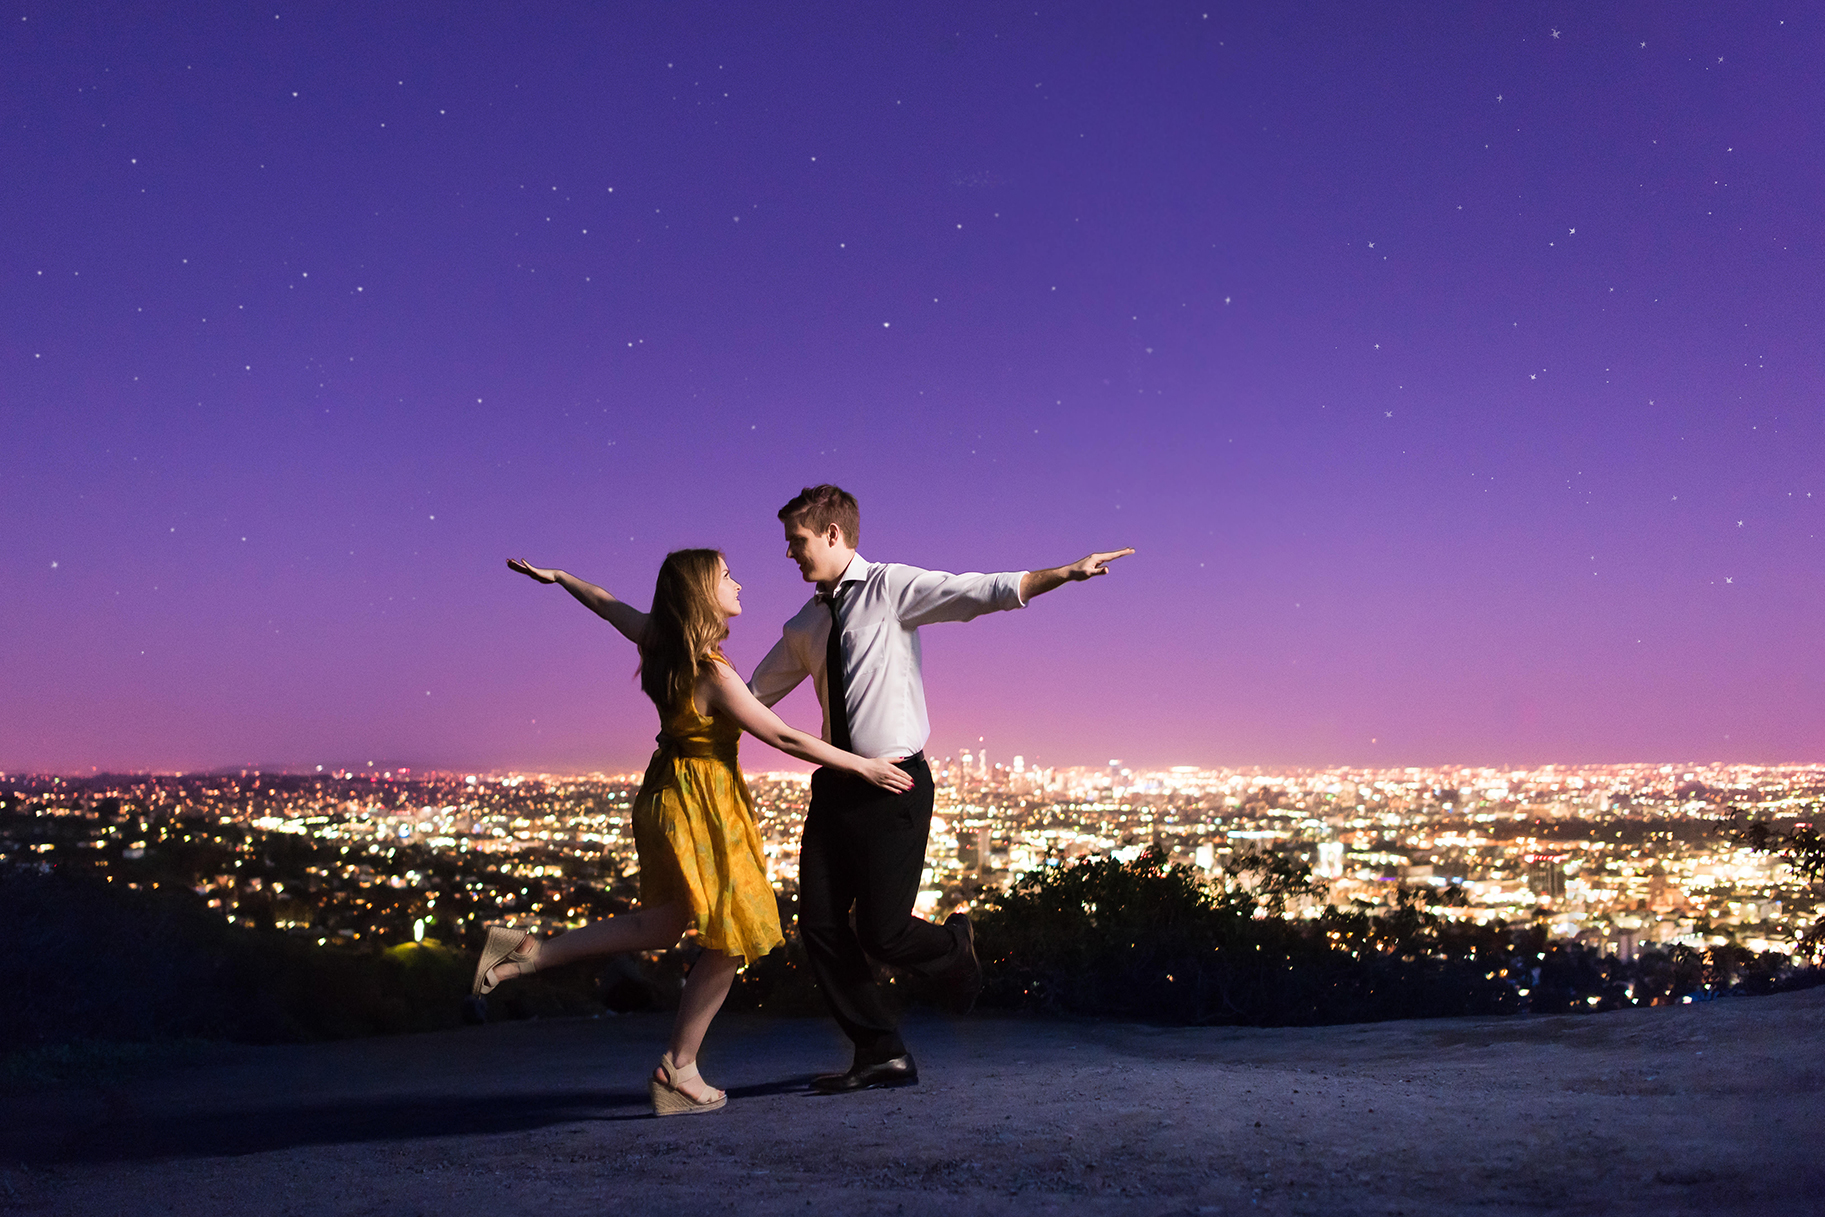 La La Land Movie Wallpapers High Quality Download Free